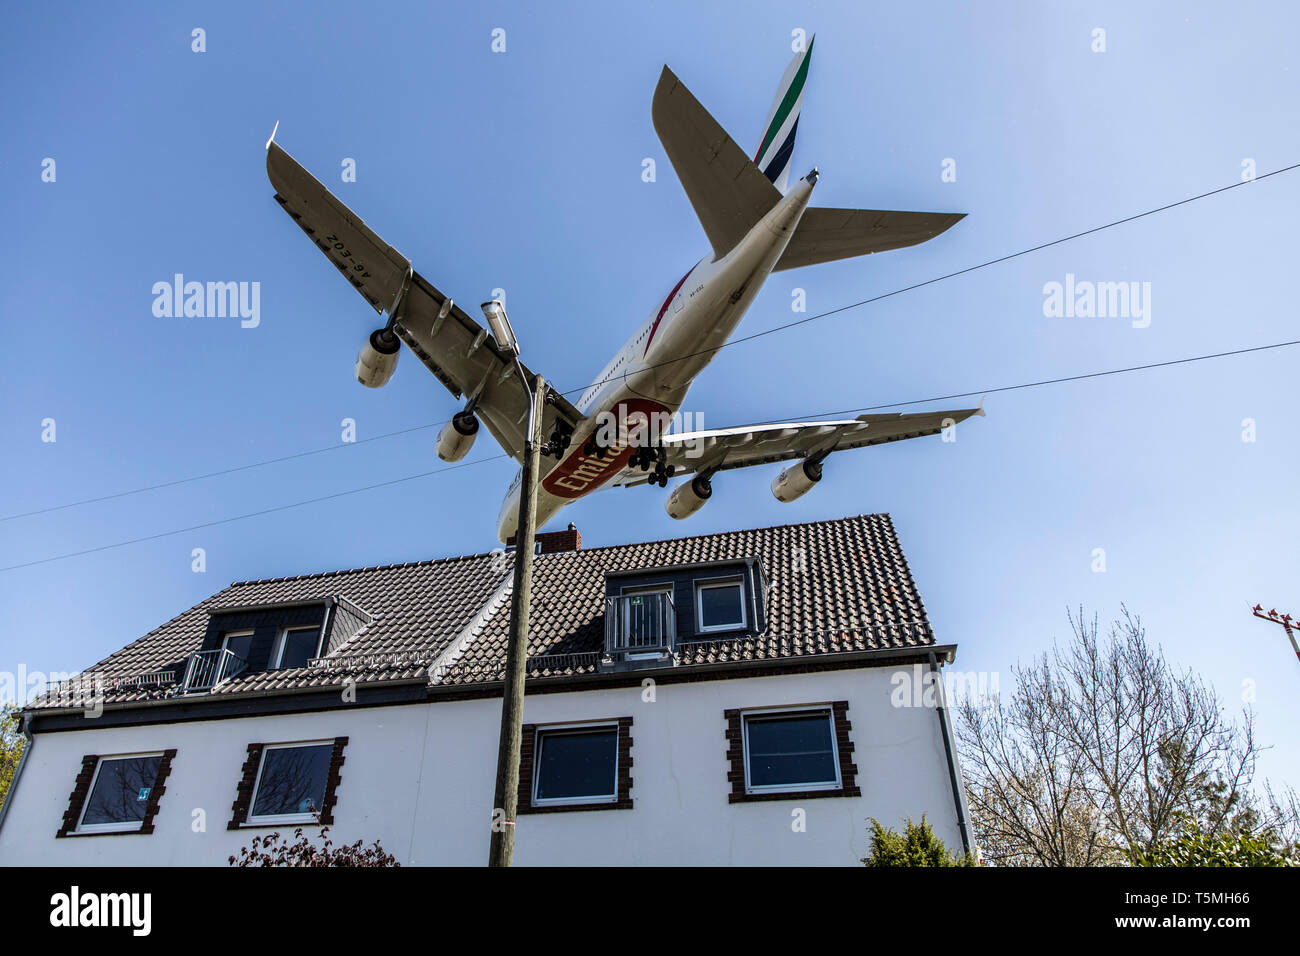 Aircraft landing on DŸsseldorf International Airport, DUS, Germany, houses in Lohausen district, directly at the runway, - Stock Image